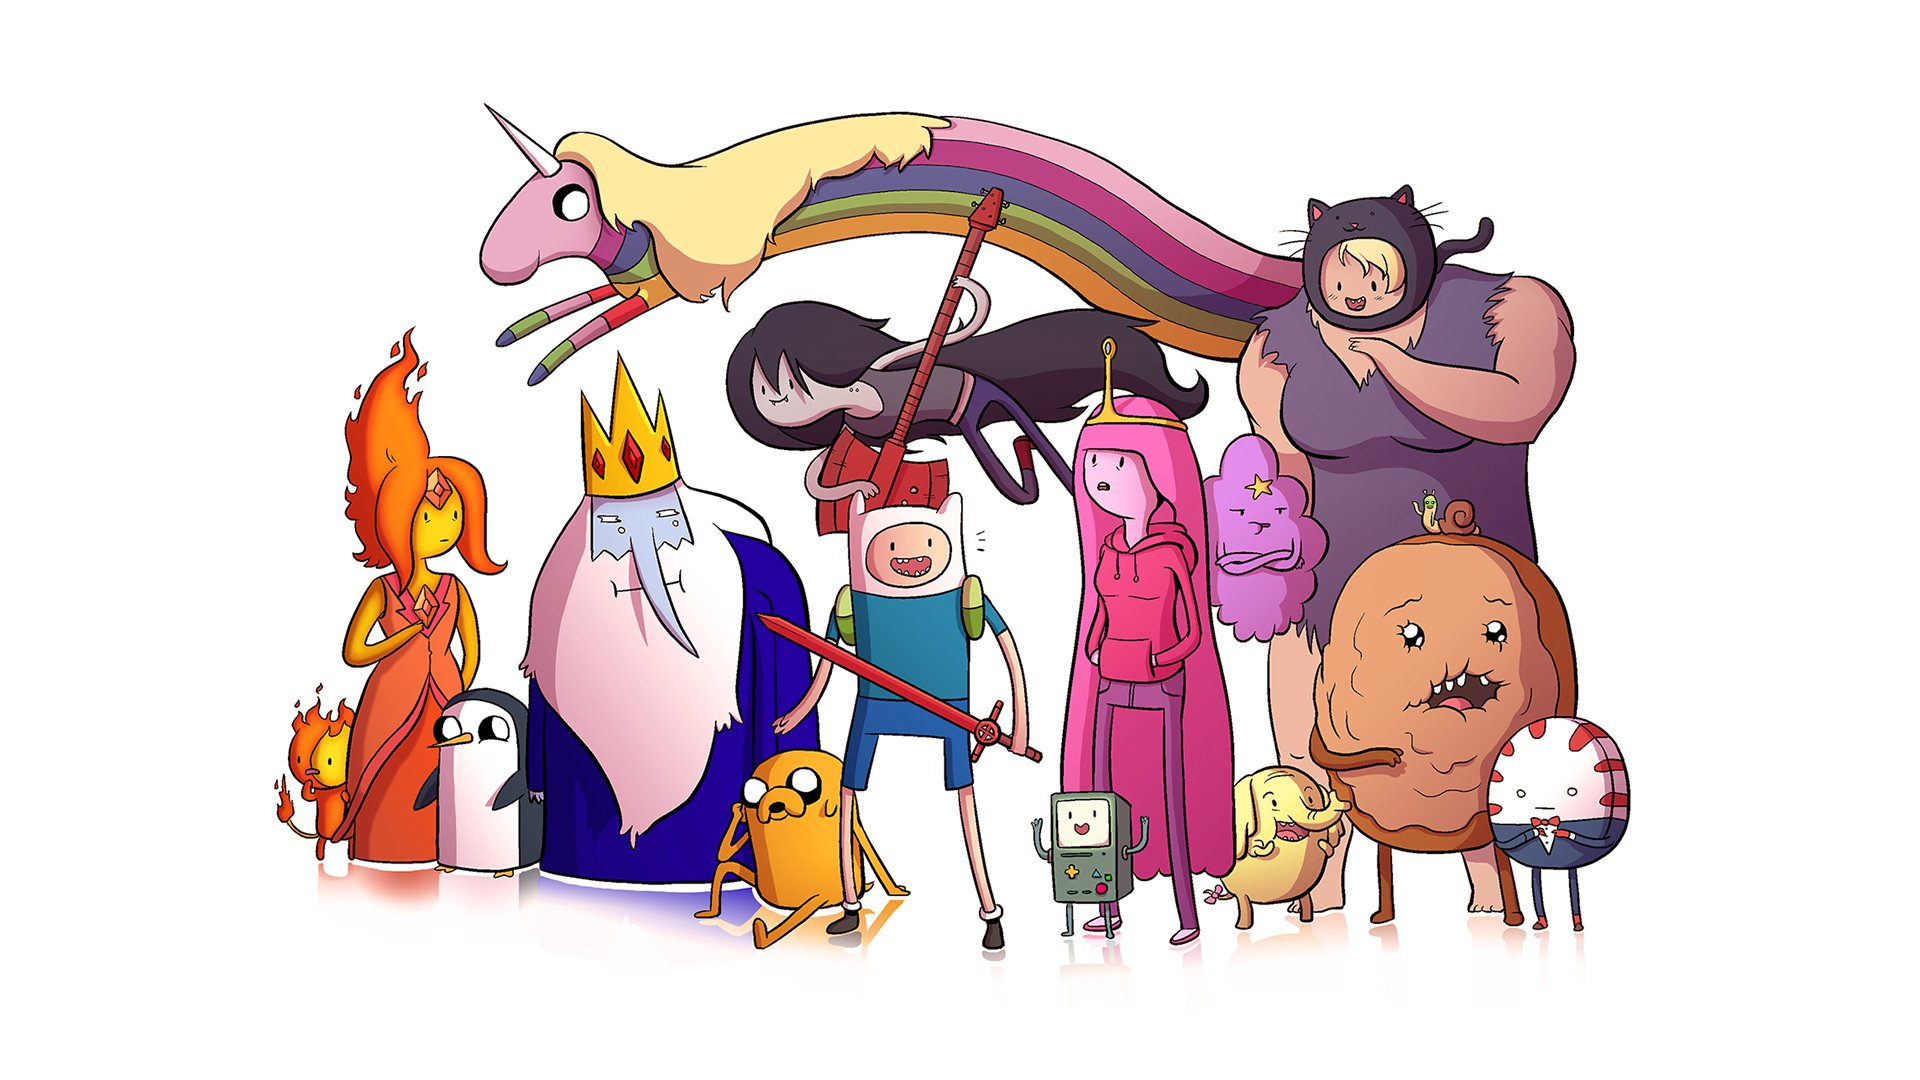 susan strong, tree trunks, gunter, flame princess, the ice king